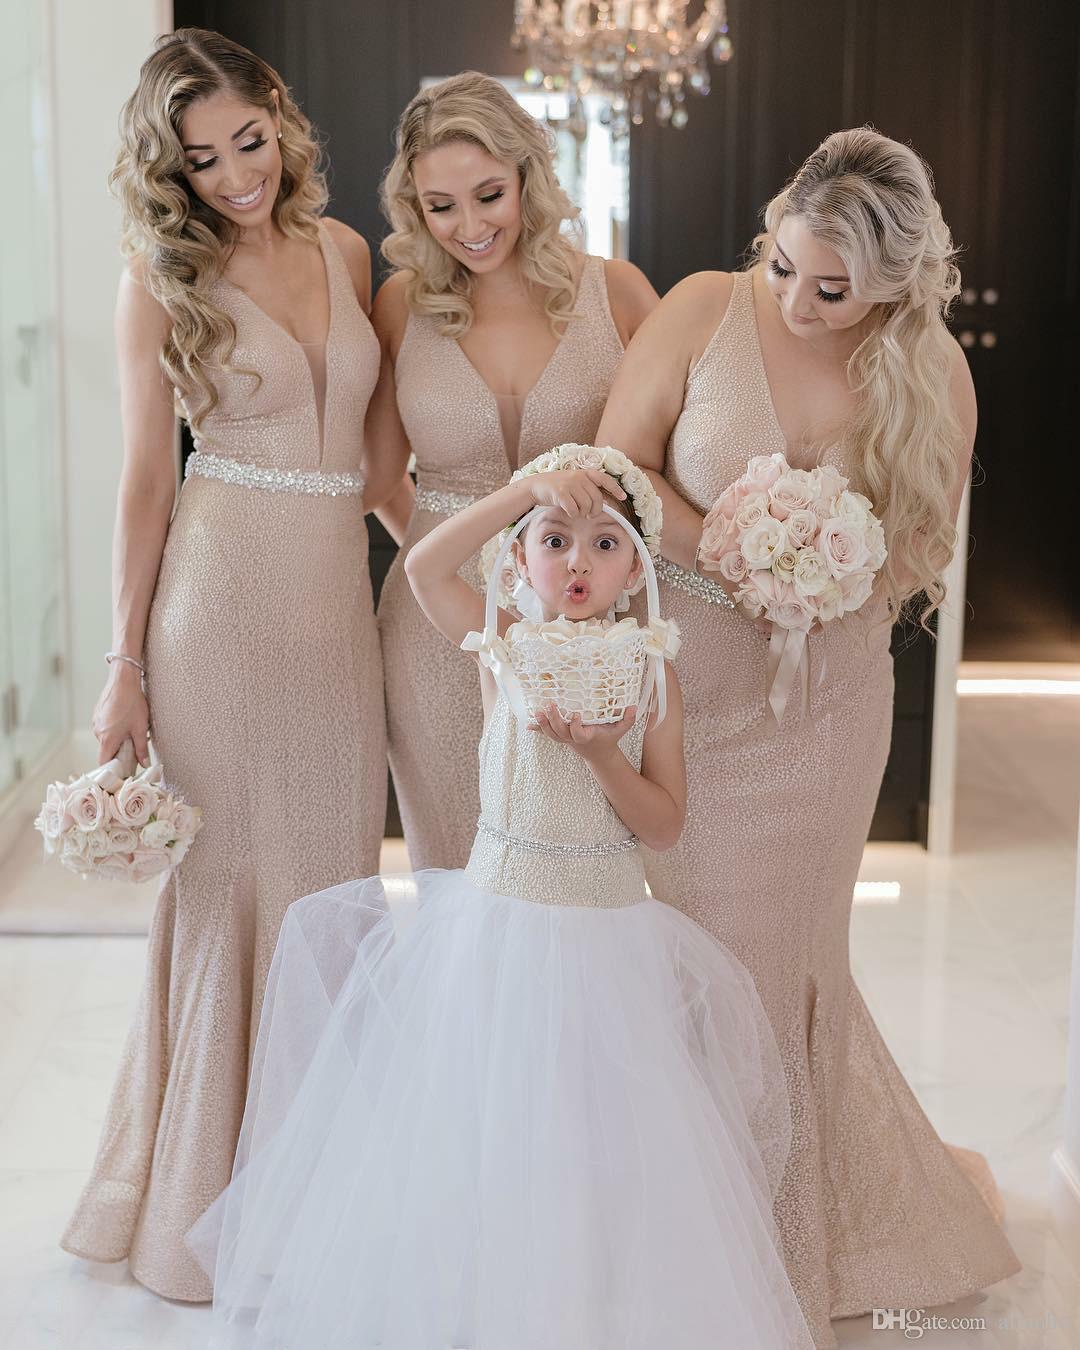 2019 New Fashion Rose Gold Mermaid Bridesmaid Dresses V Neck Sequined Beads Sashes Floor Length Bling Bling Formal Dress Maid Of Honor Dress